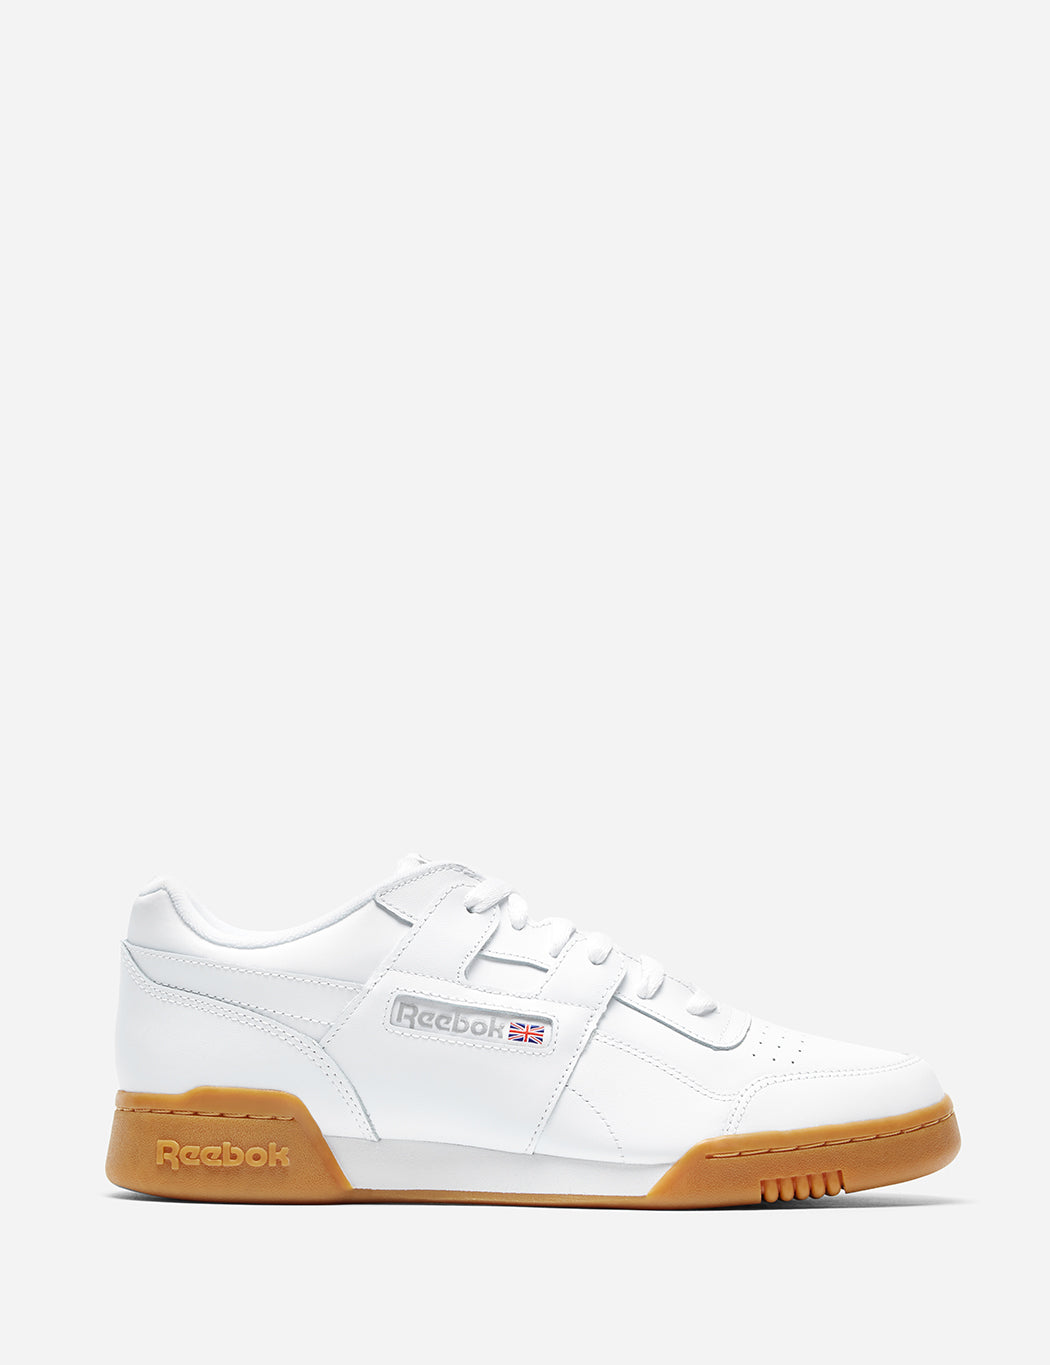 b17f5b2347 Reebok Workout Plus Gum Sole (CN2126) in White Carbon Classic Red